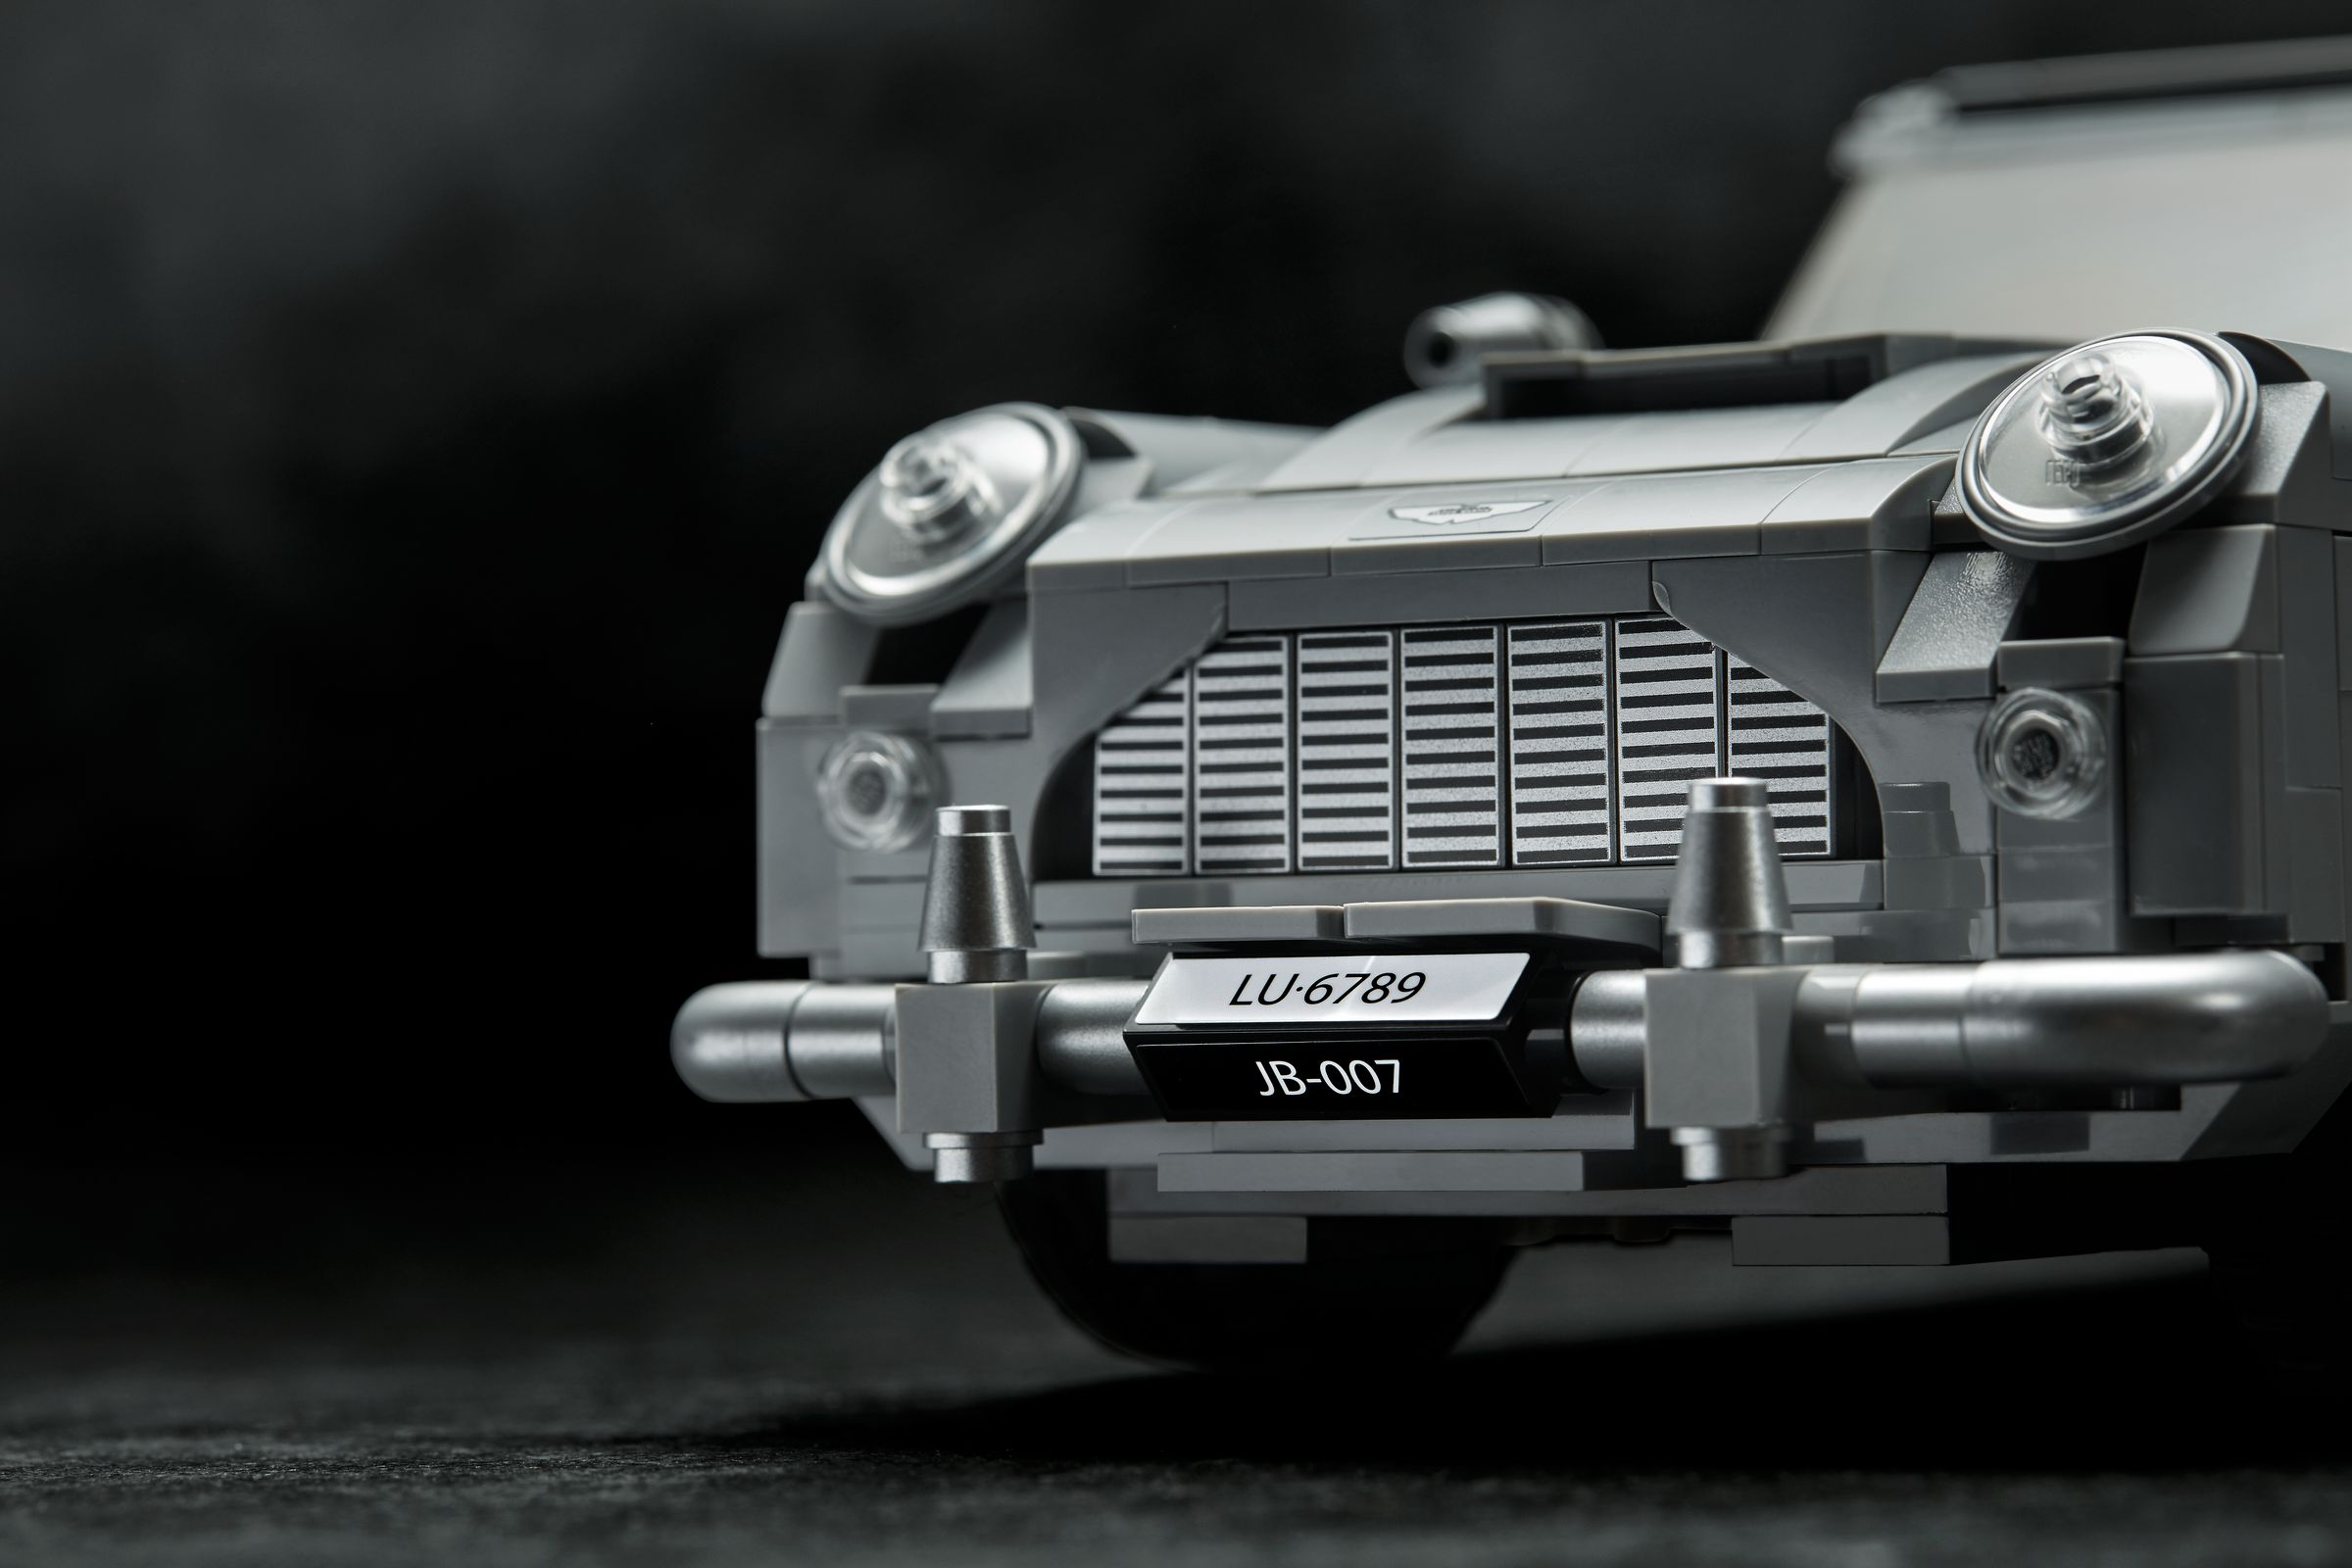 Lego 10262 James Bond Aston Martin Db5 Creator Expert